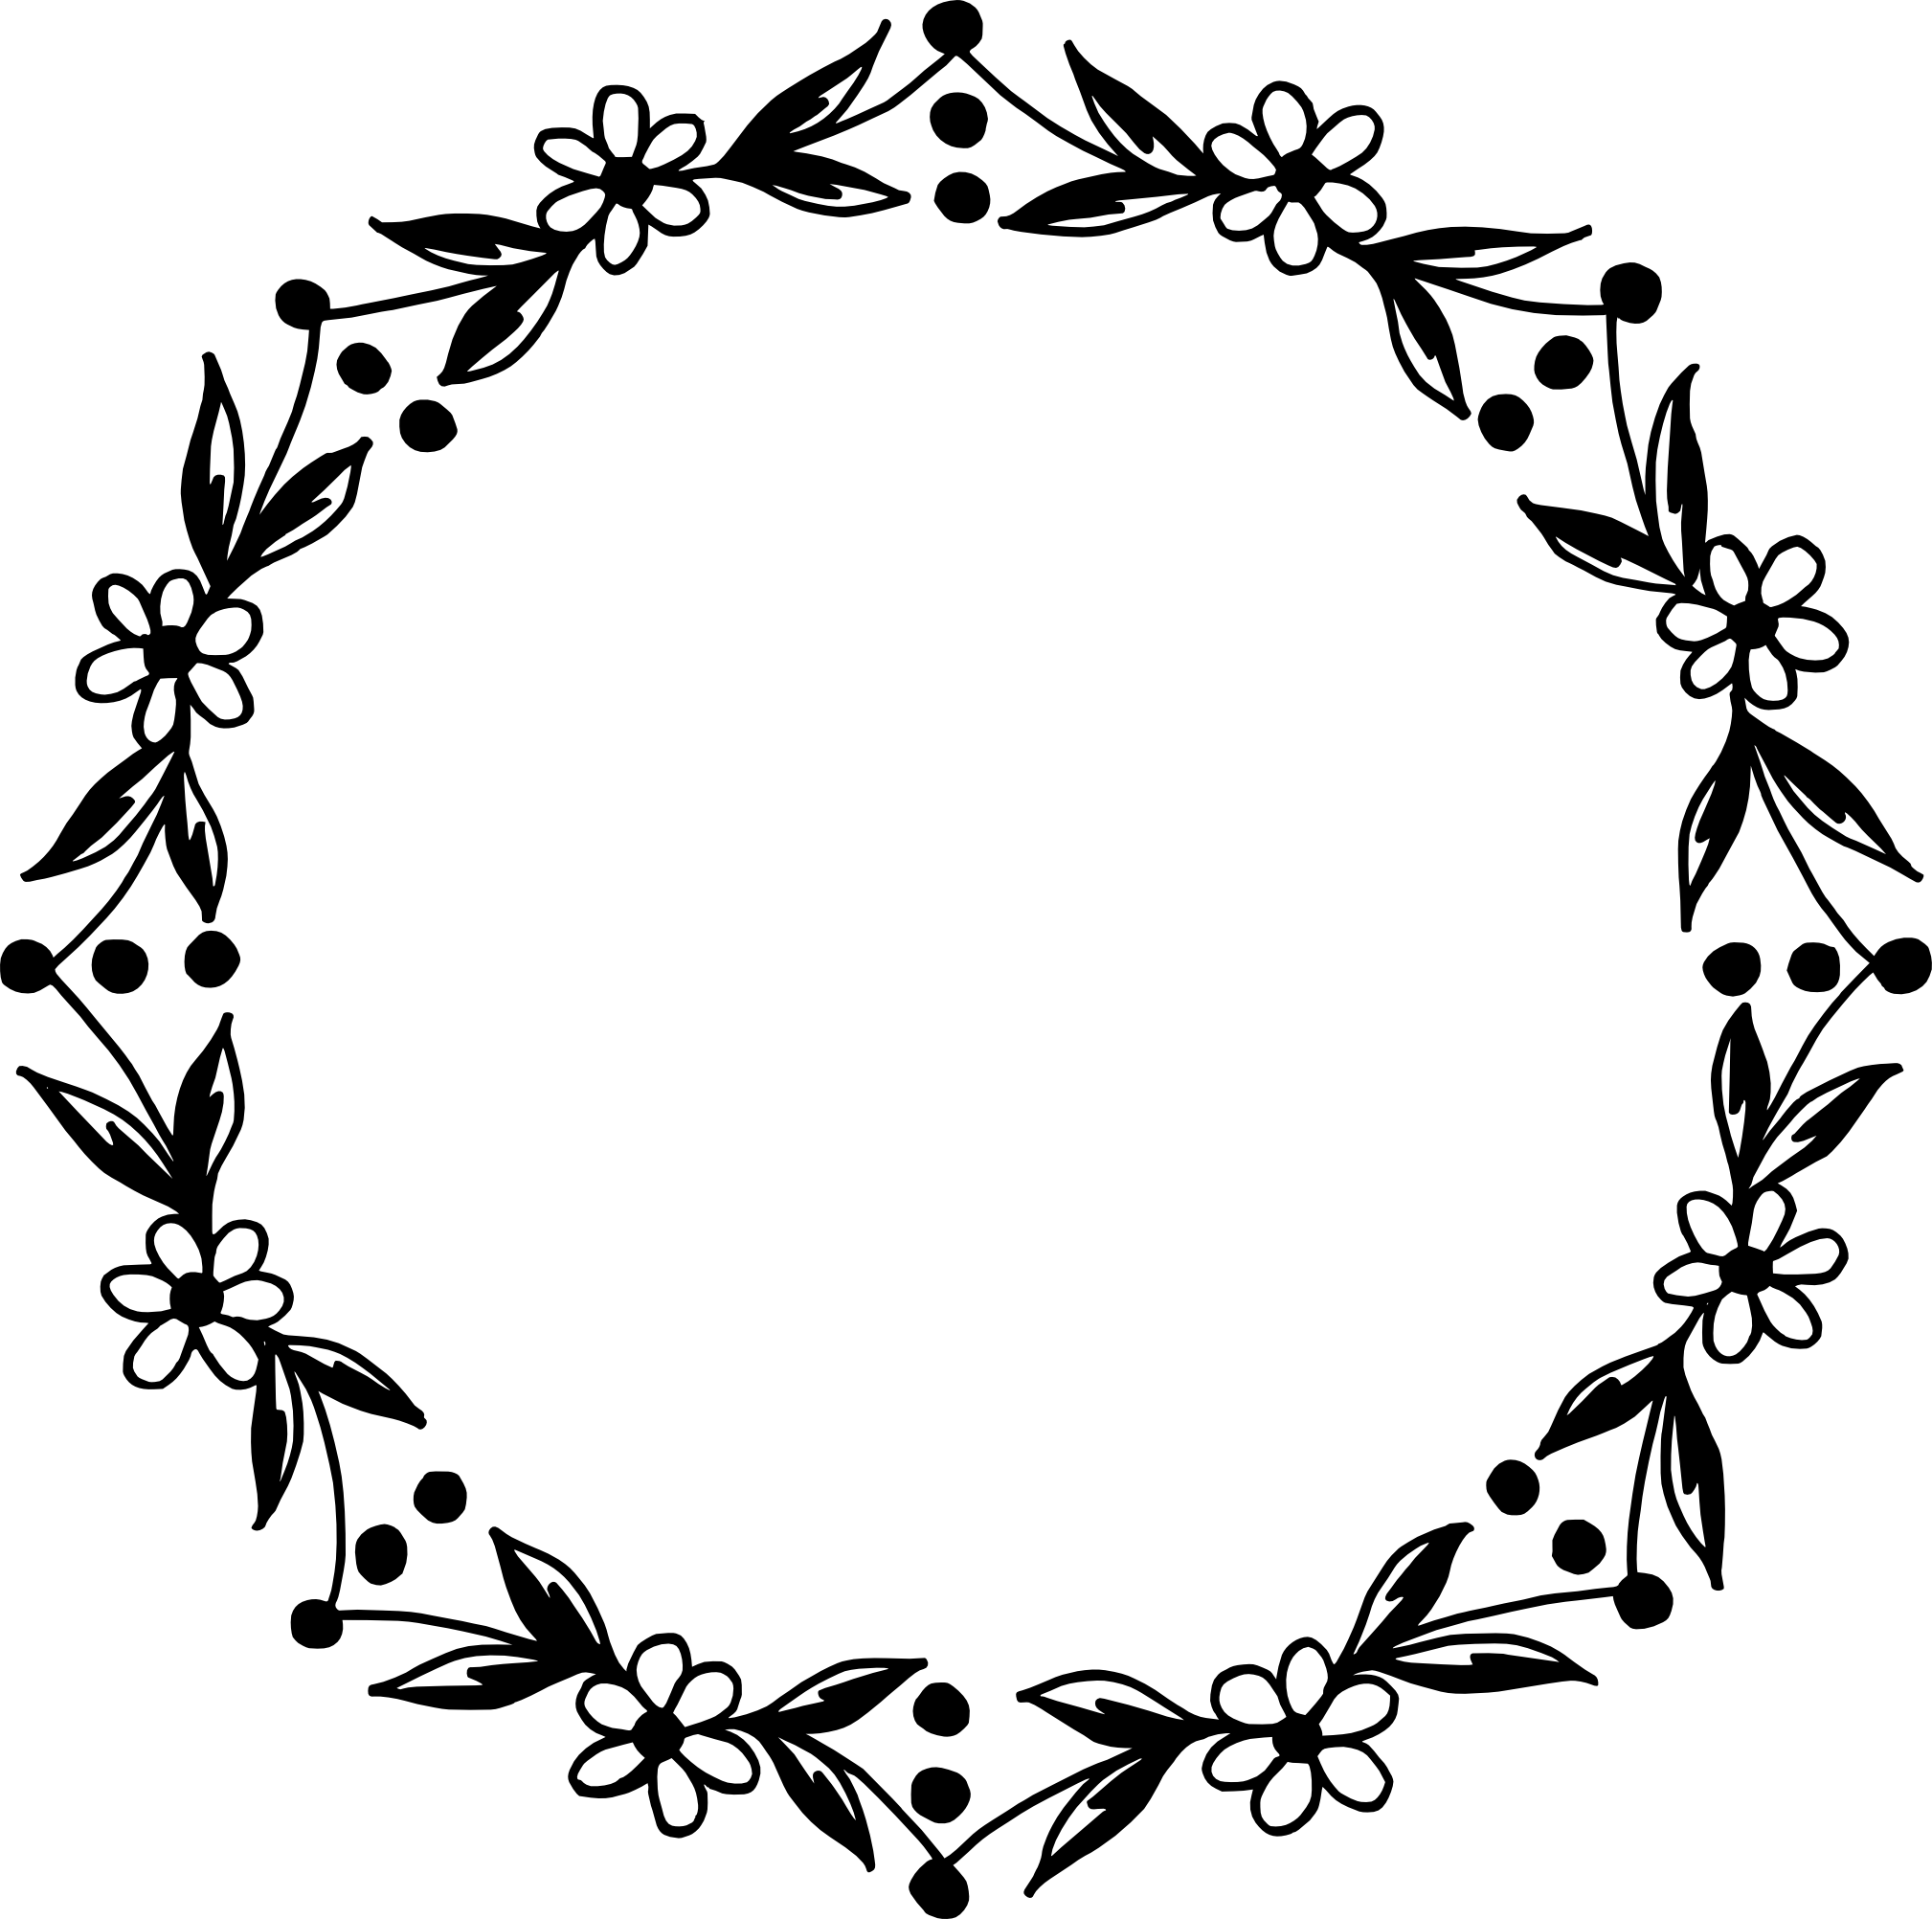 10 Circle Floral Frame Vector (PNG Transparent, SVG